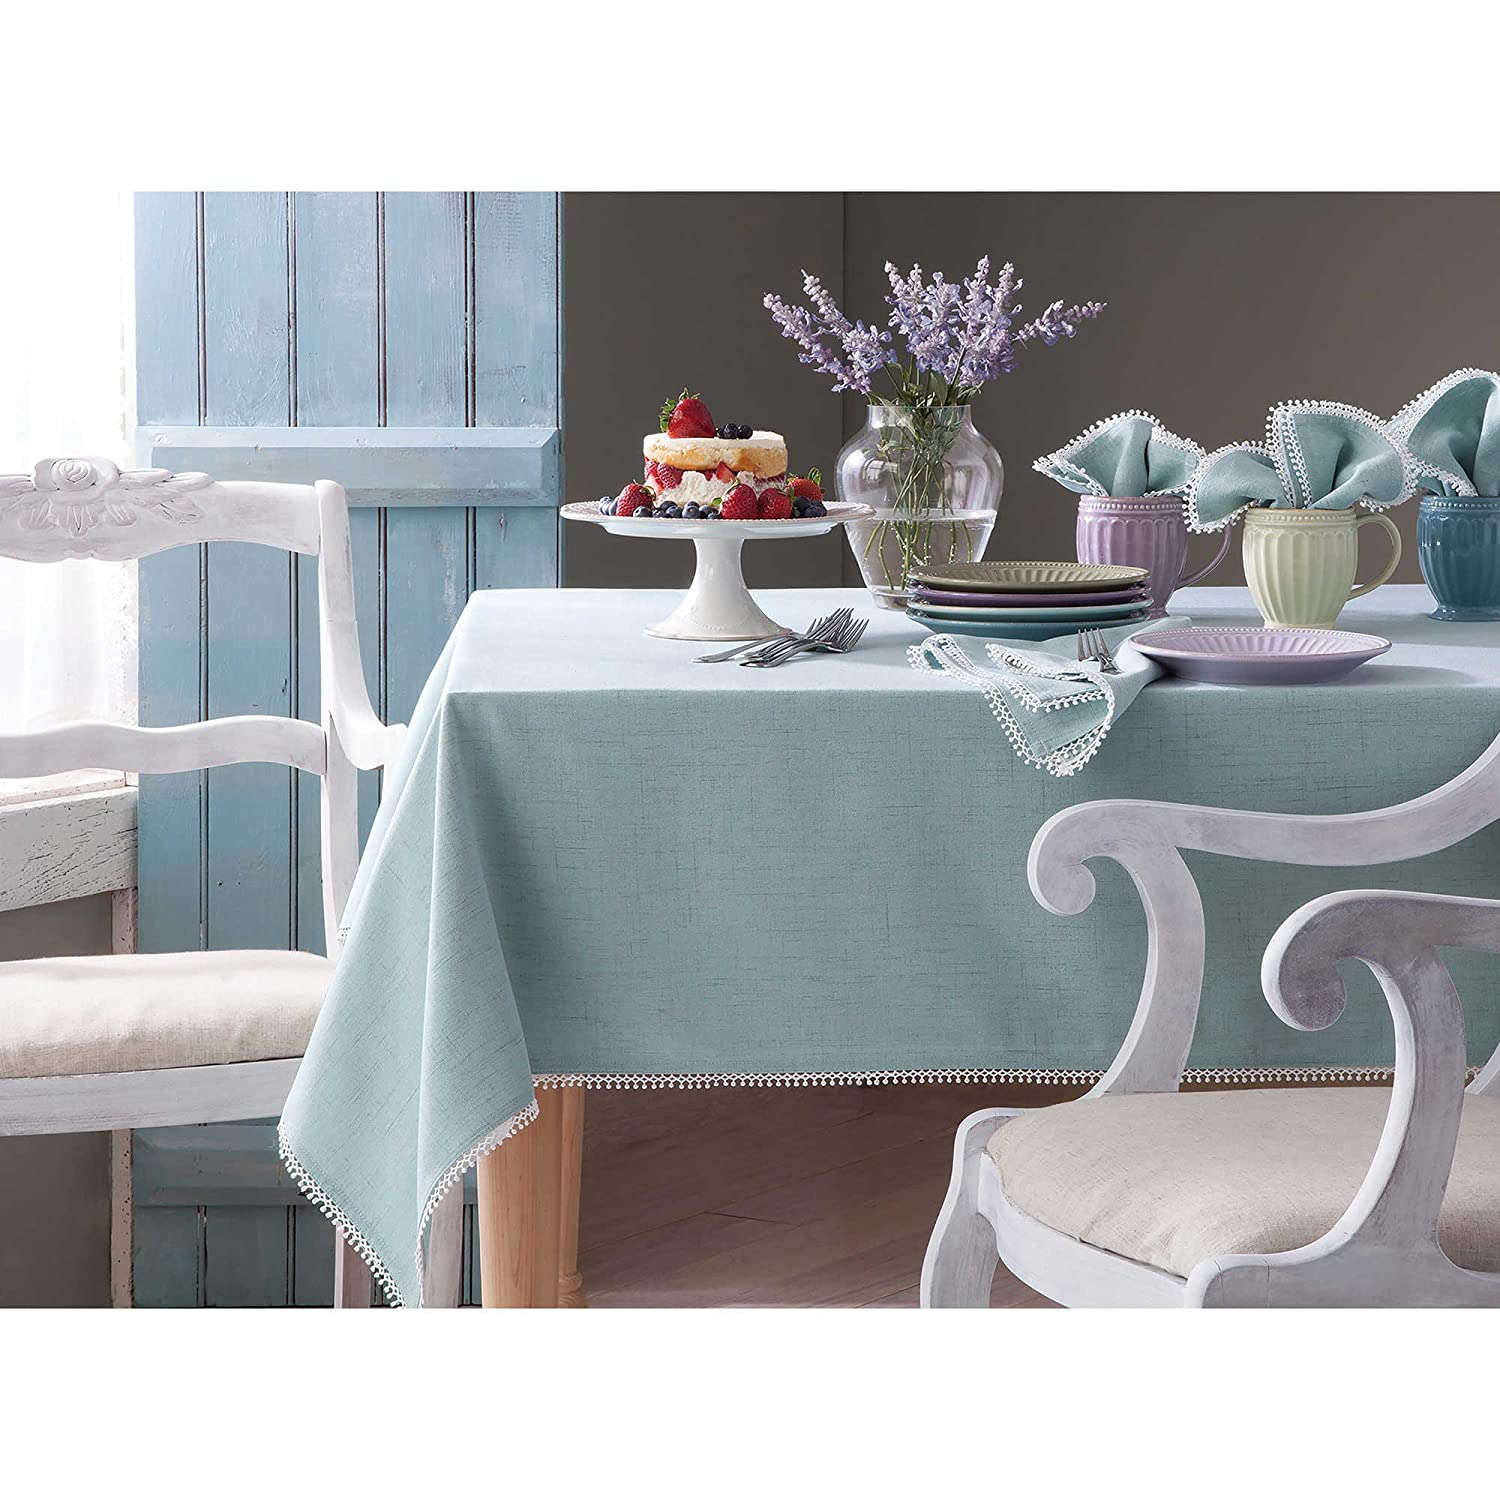 Set Of 4 Lenox HomeCrate French Perle Collection Solid Placemats 13 X 19 Ice Blue